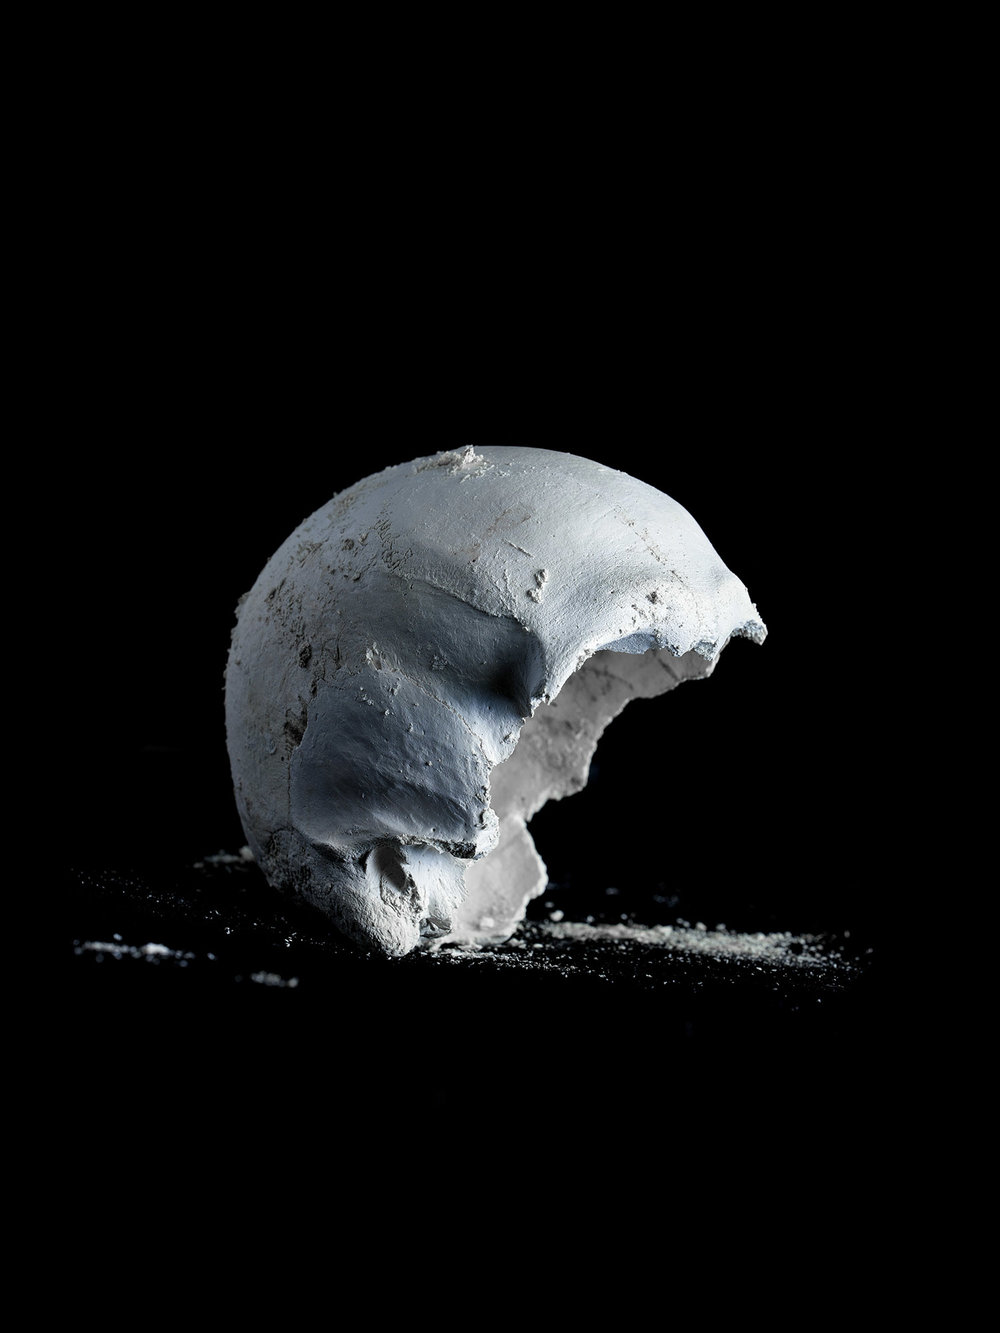 Human Skull Processed by Alkaline Hydrolysis, UCLA, Los Angeles, California, 2017